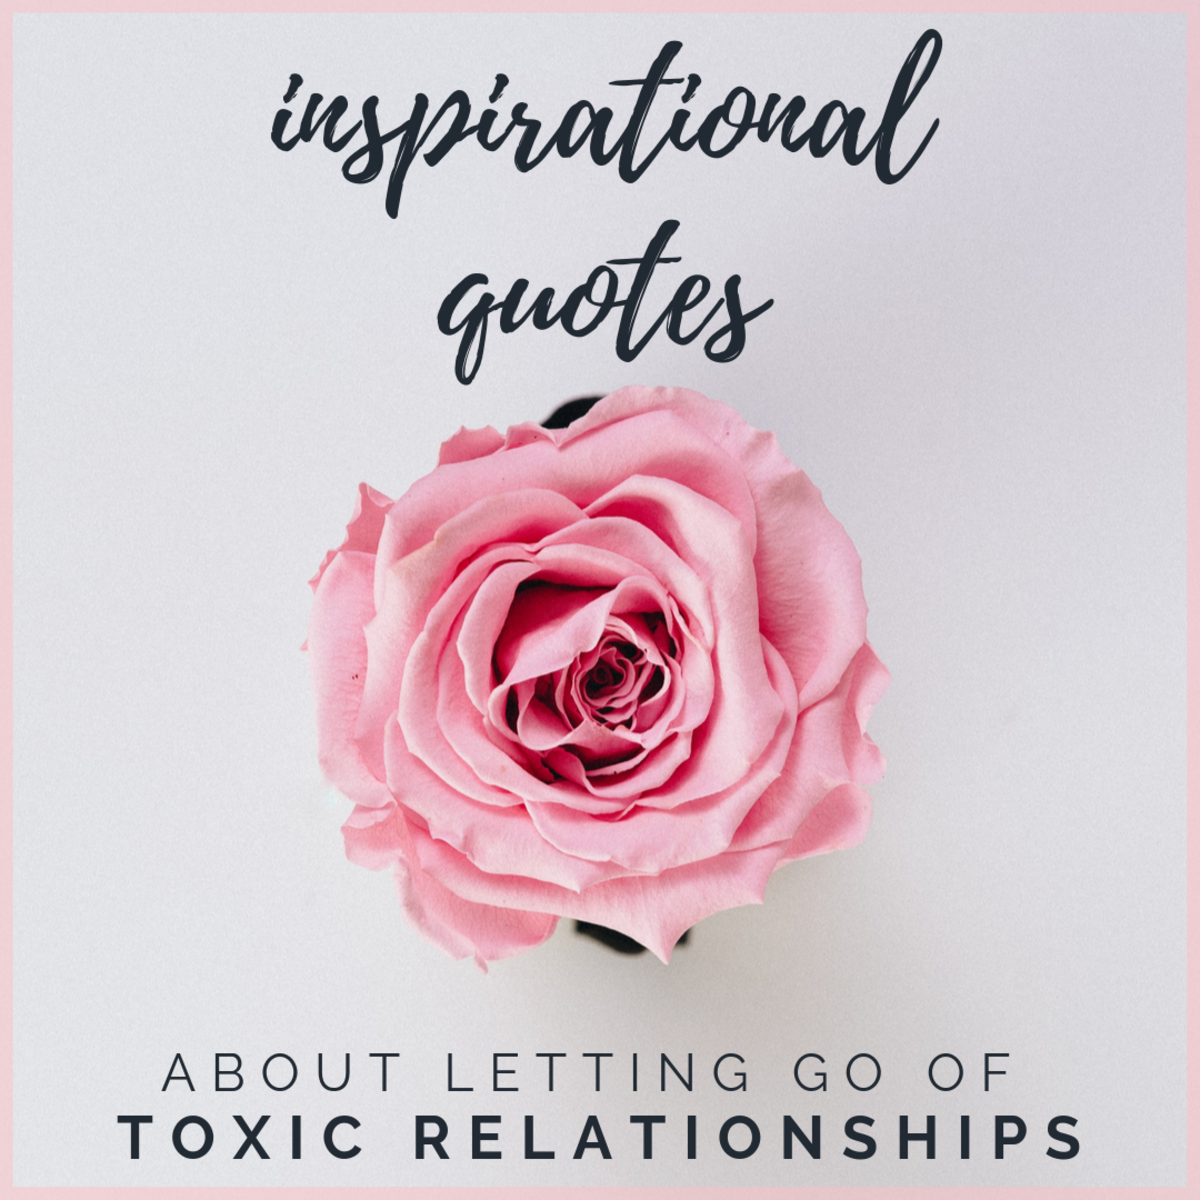 25 Inspirational Quotes to Help You End Your Toxic Relationship